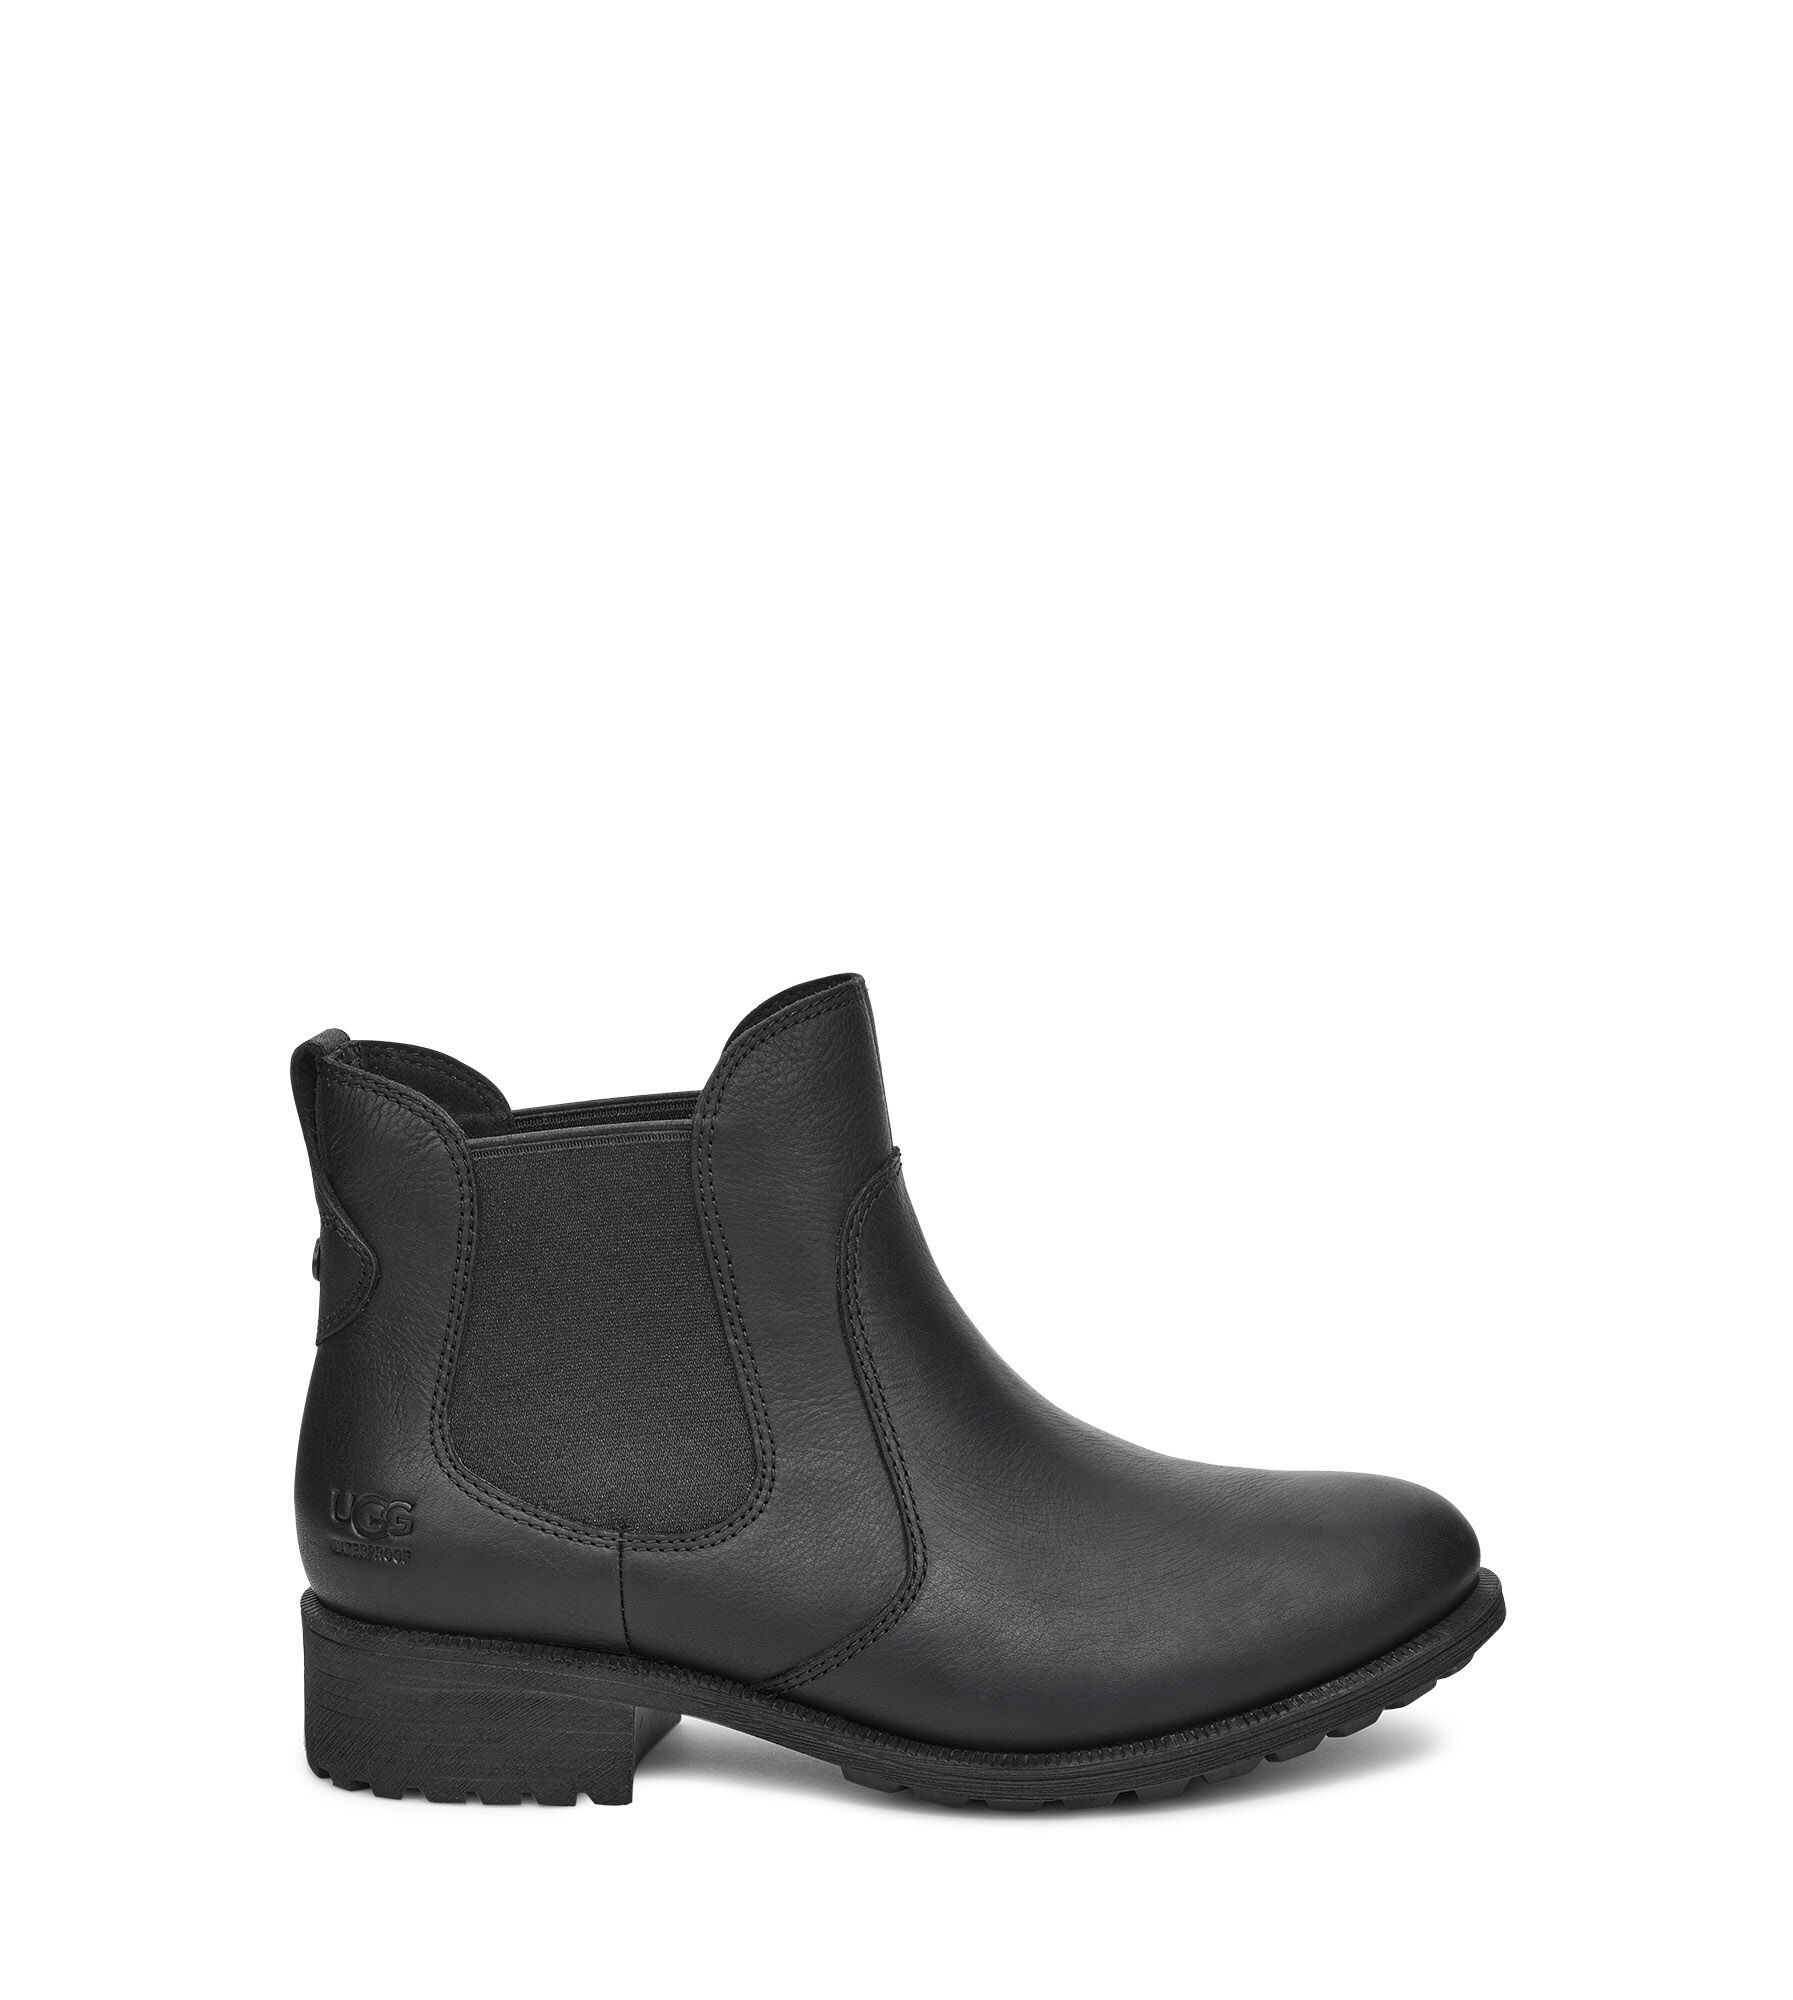 Ankle Boots For Women   Women's Leather